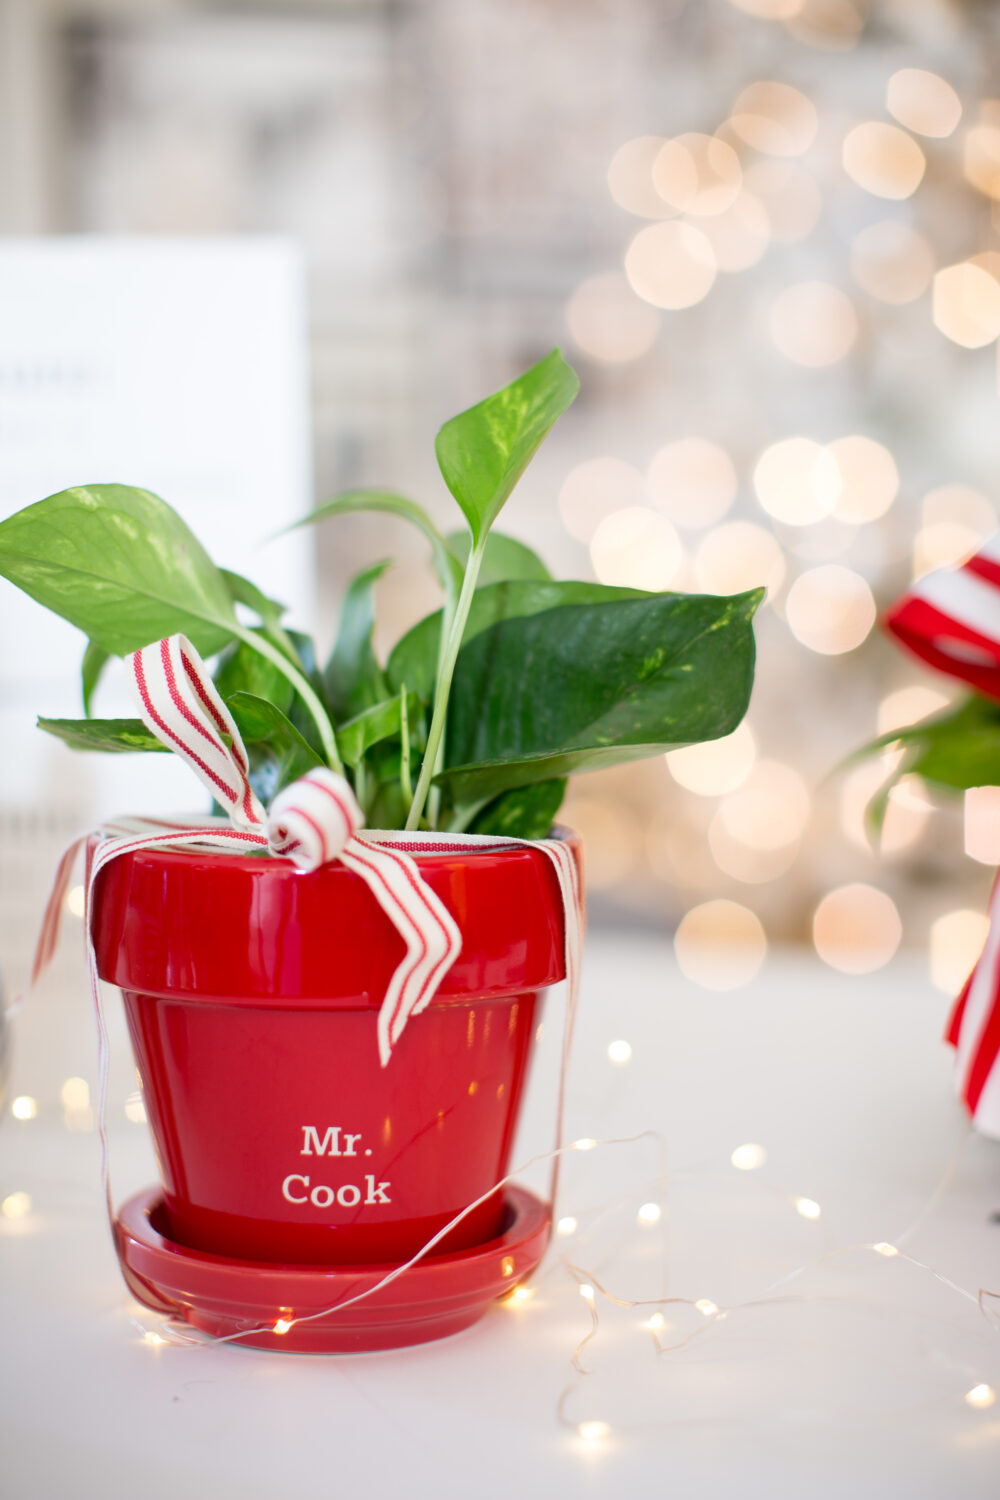 Christmas Gifts for Neighbors and Teachers